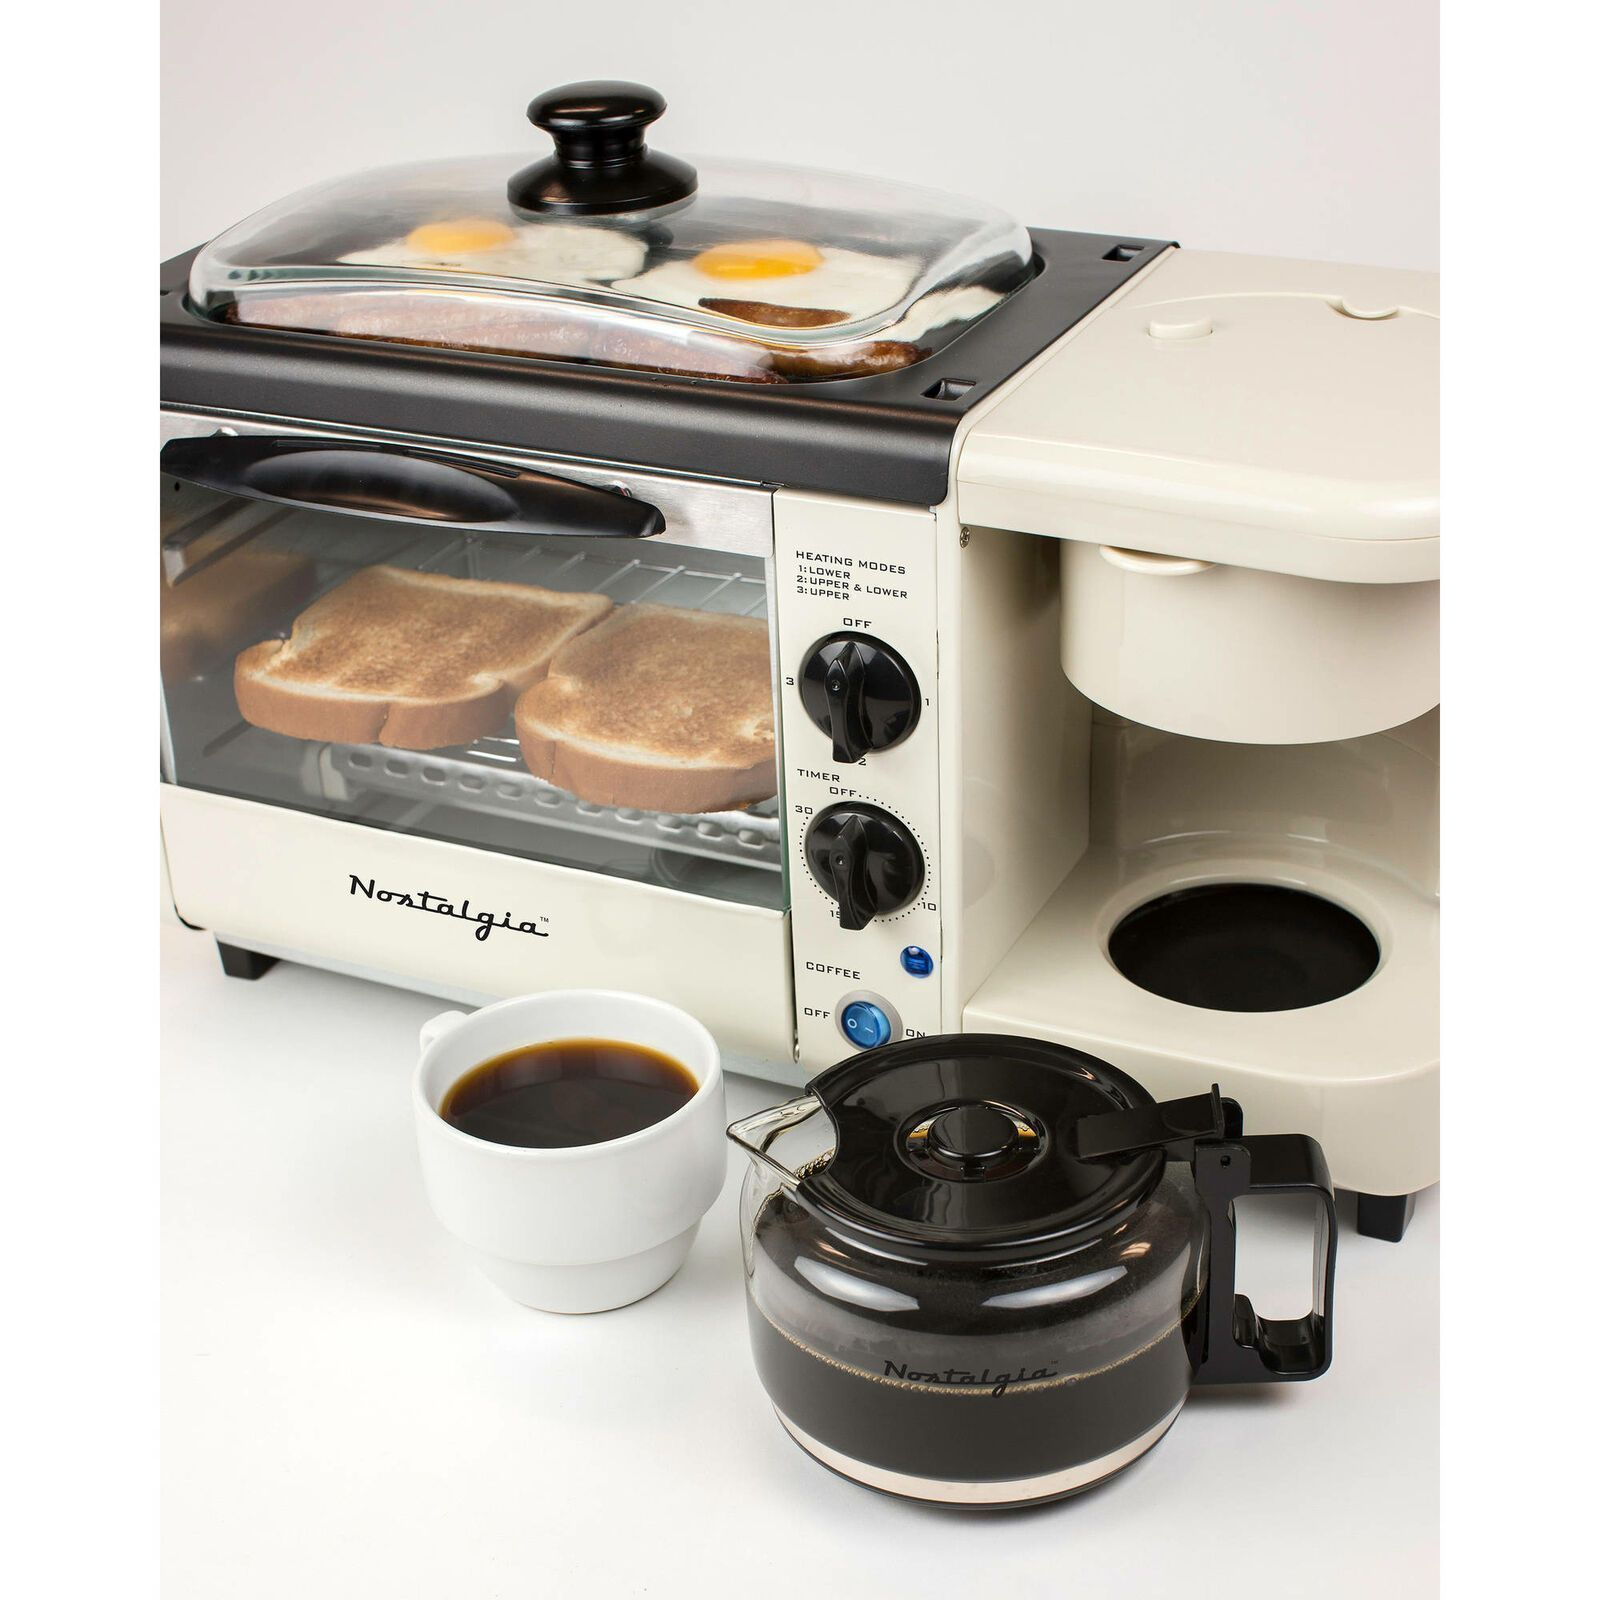 Toaster Coffee Maker Station Multi function Home  - Ovens - Ideas of Ovens